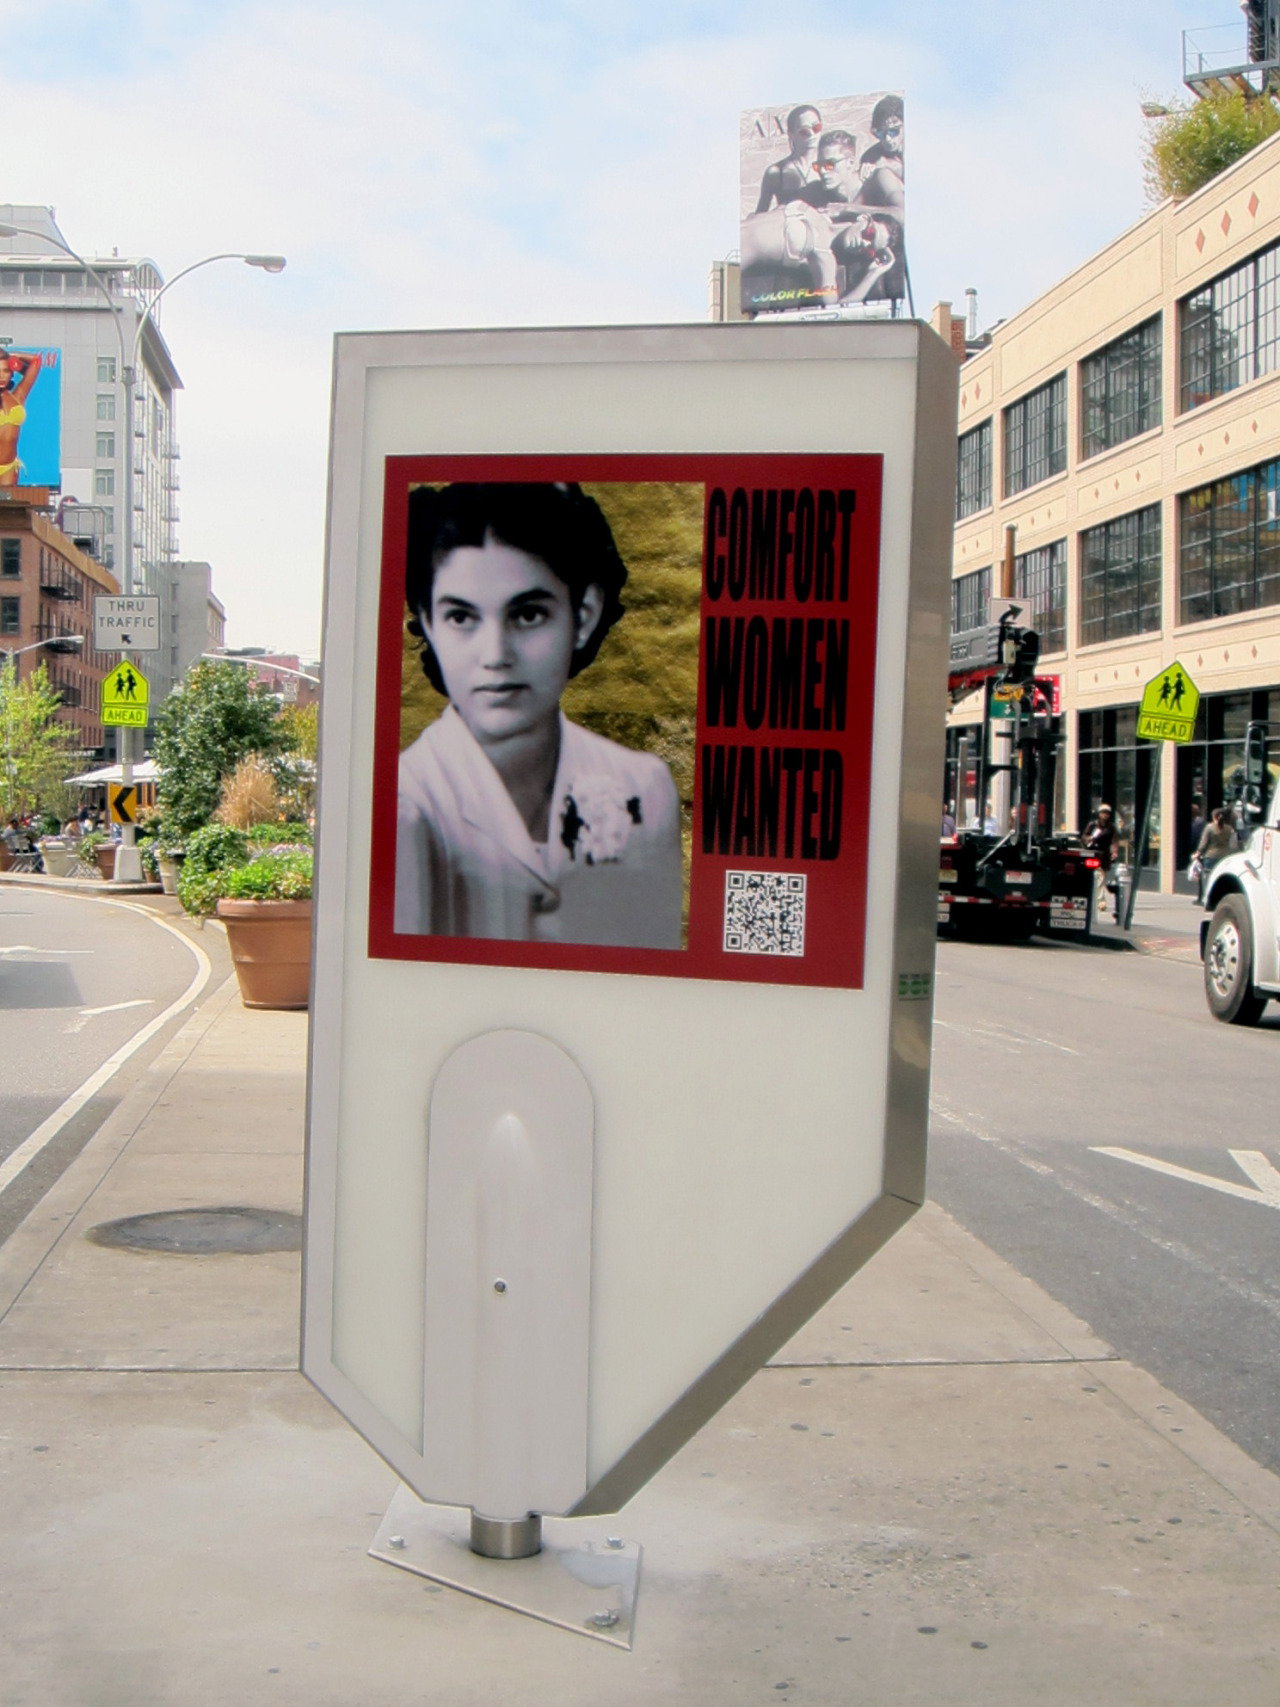 "nycurbanart:  Comfort Women Wanted""Comfort Women Wanted"", on display for one month in an art display structure (designed by the Urban Art Program) at 14th Street & 9th Avenue, sheds light on one of the largest cases of female trafficking in the 20th Century. Learn more: http://bit.ly/147NaR6"